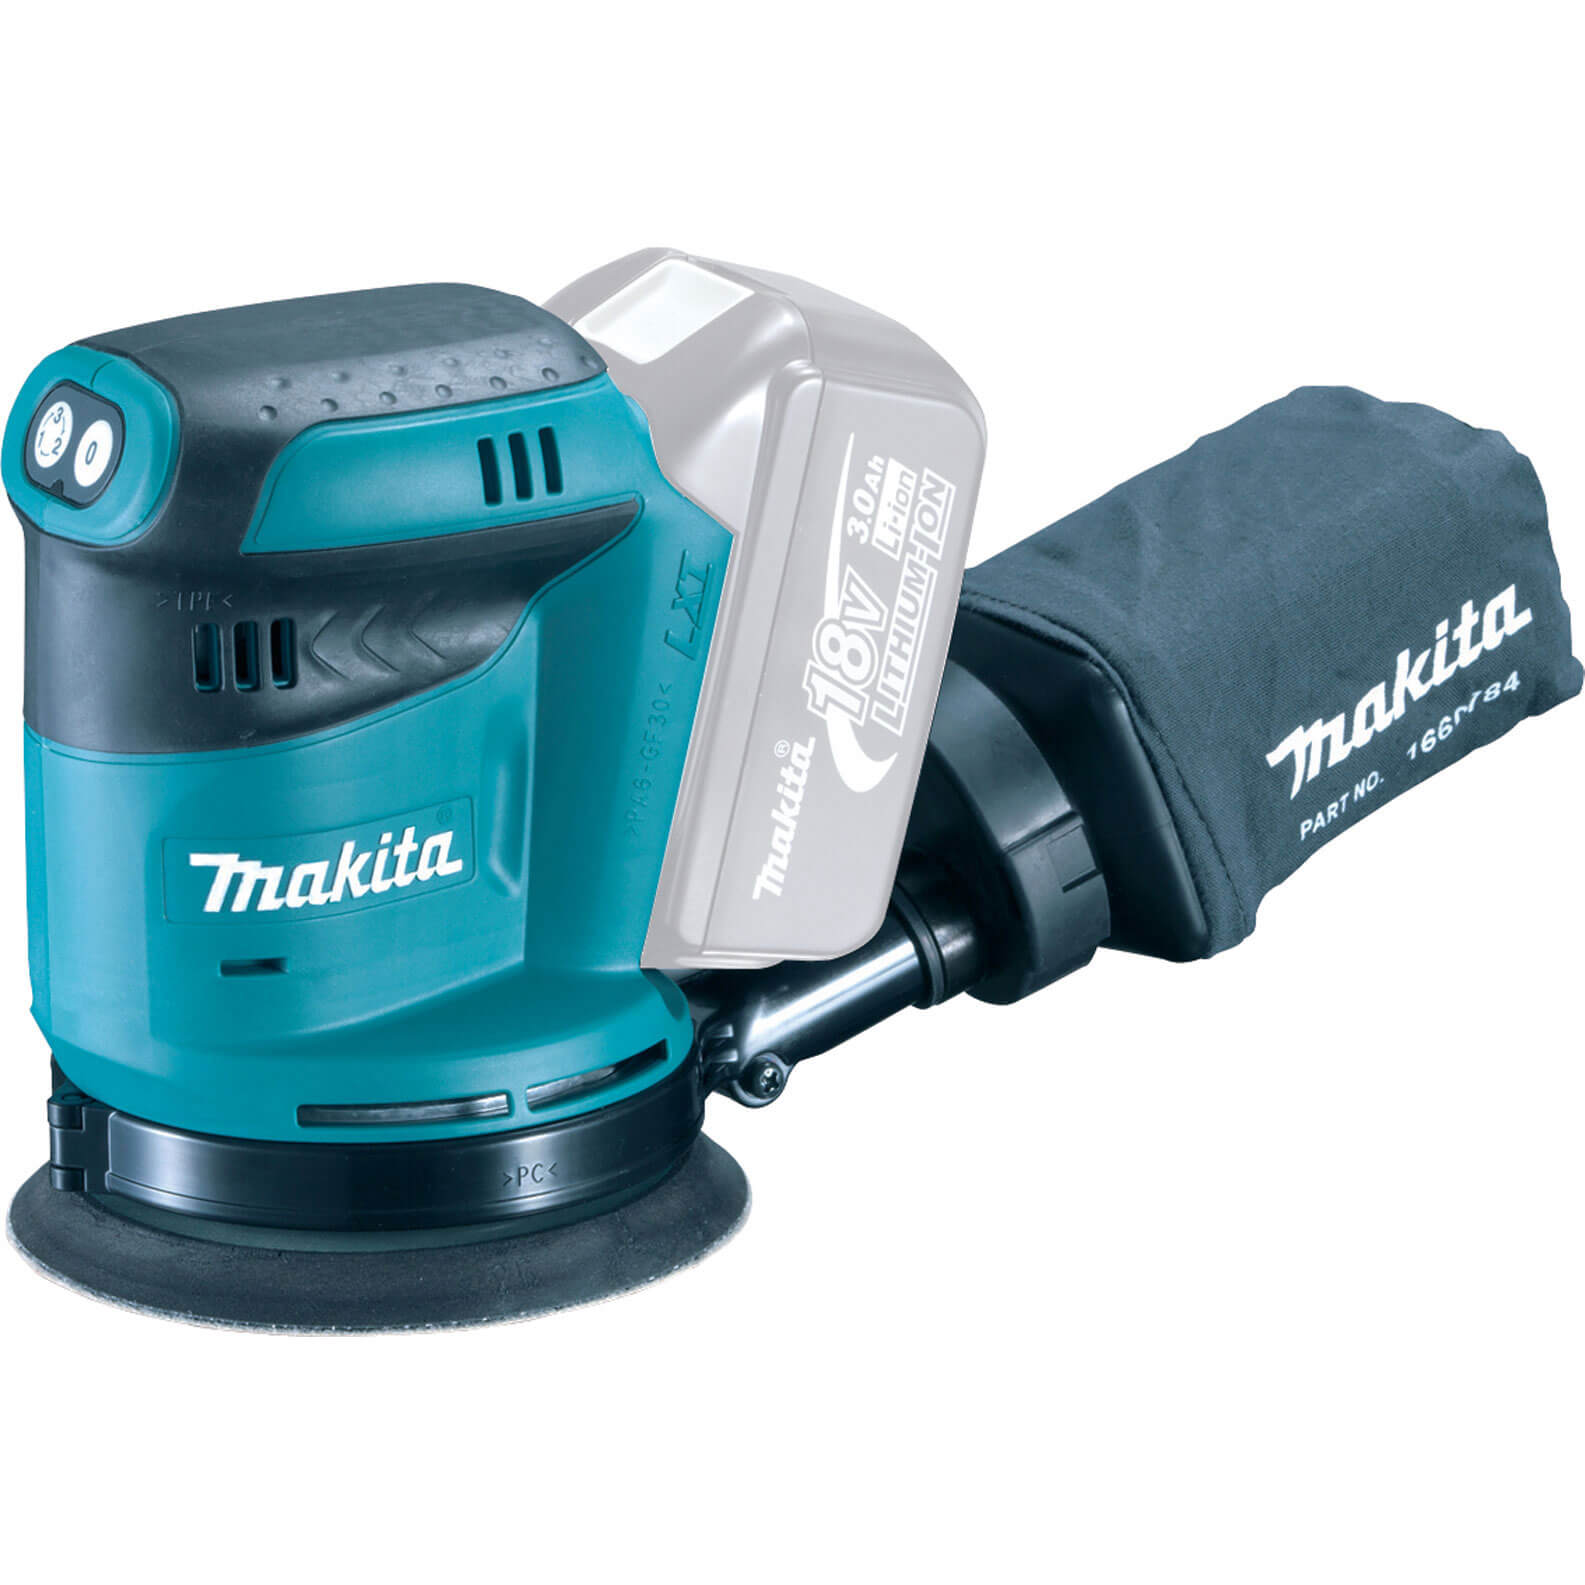 Image of Makita DBO180Z 18v Cordless Random Orbit Disc Sander 125mm Disc without Battery or Charger